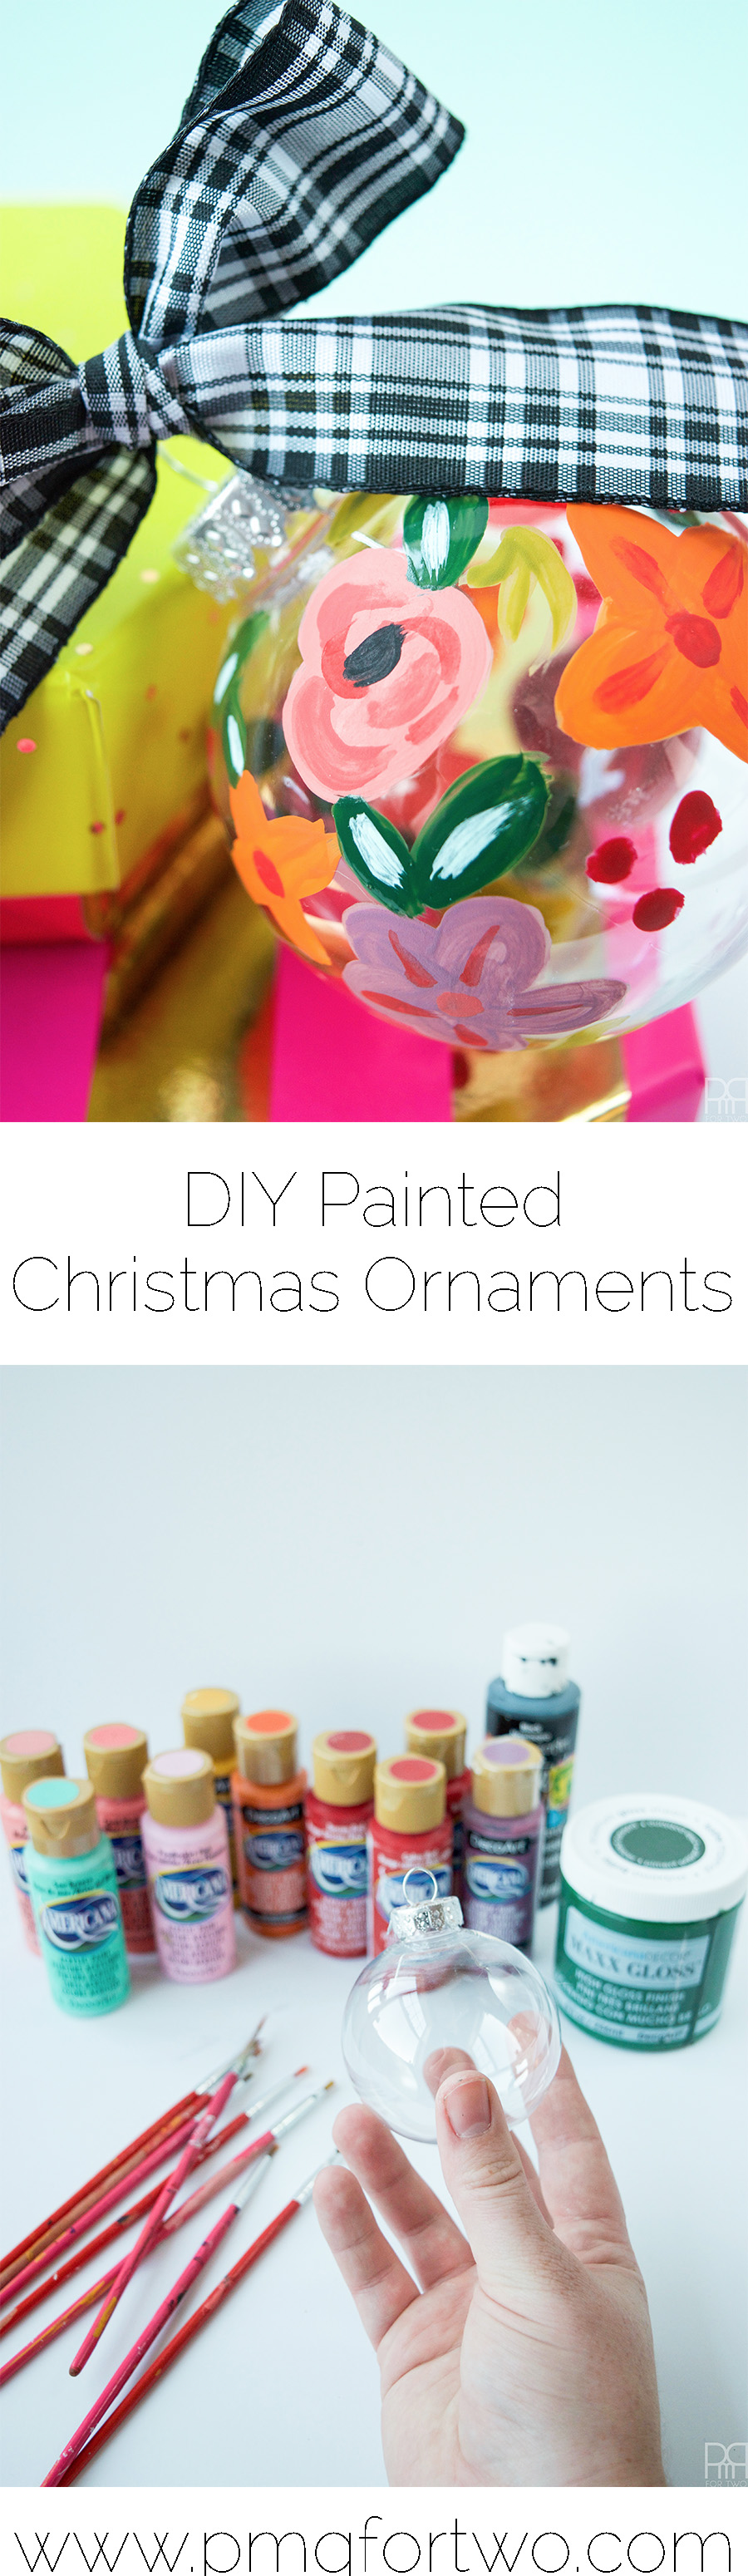 diy-painted-christmas-ornaments